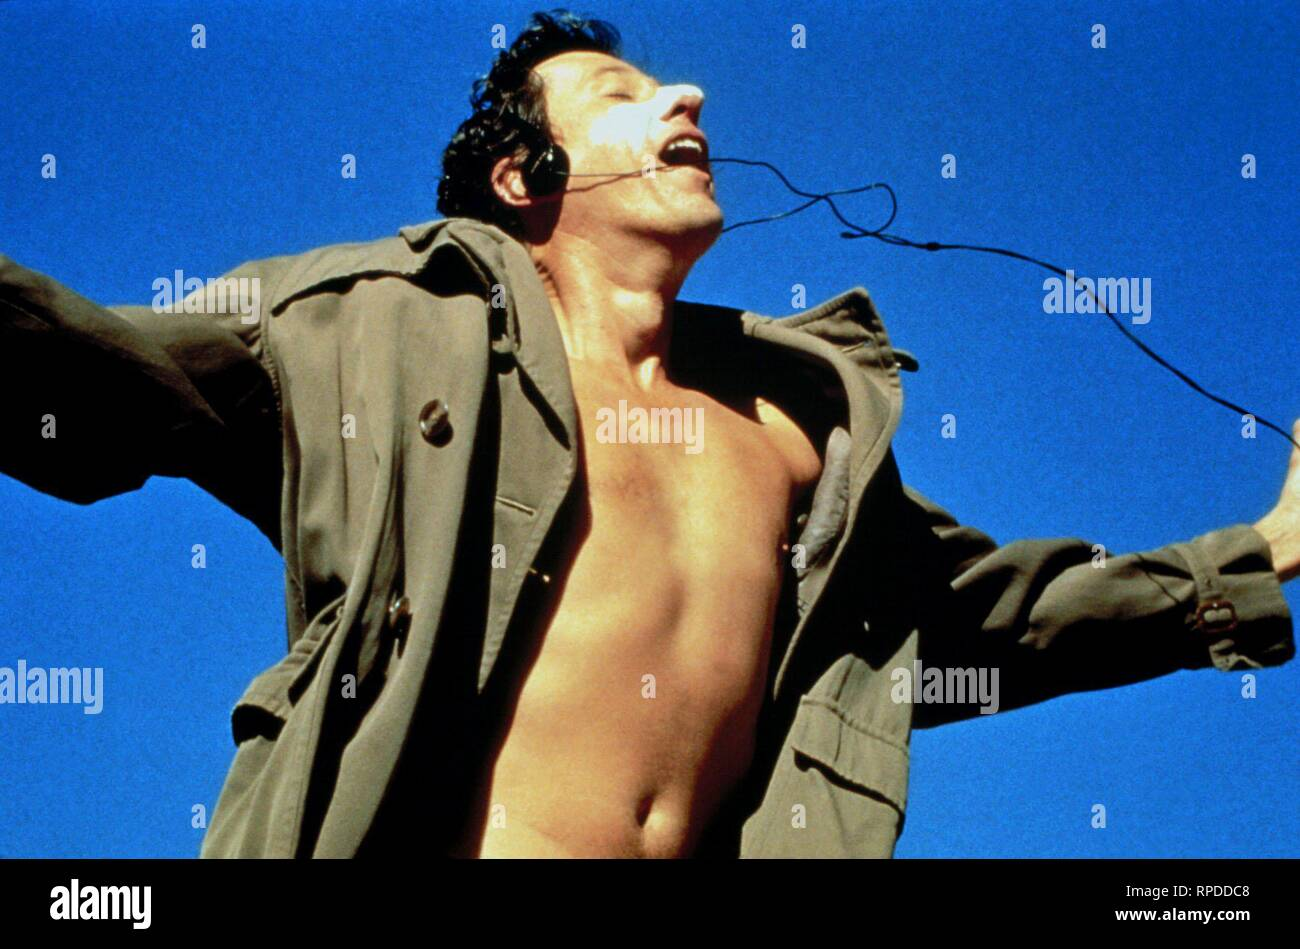 GEOFFREY RUSH, SHINE, 1996 - Stock Image